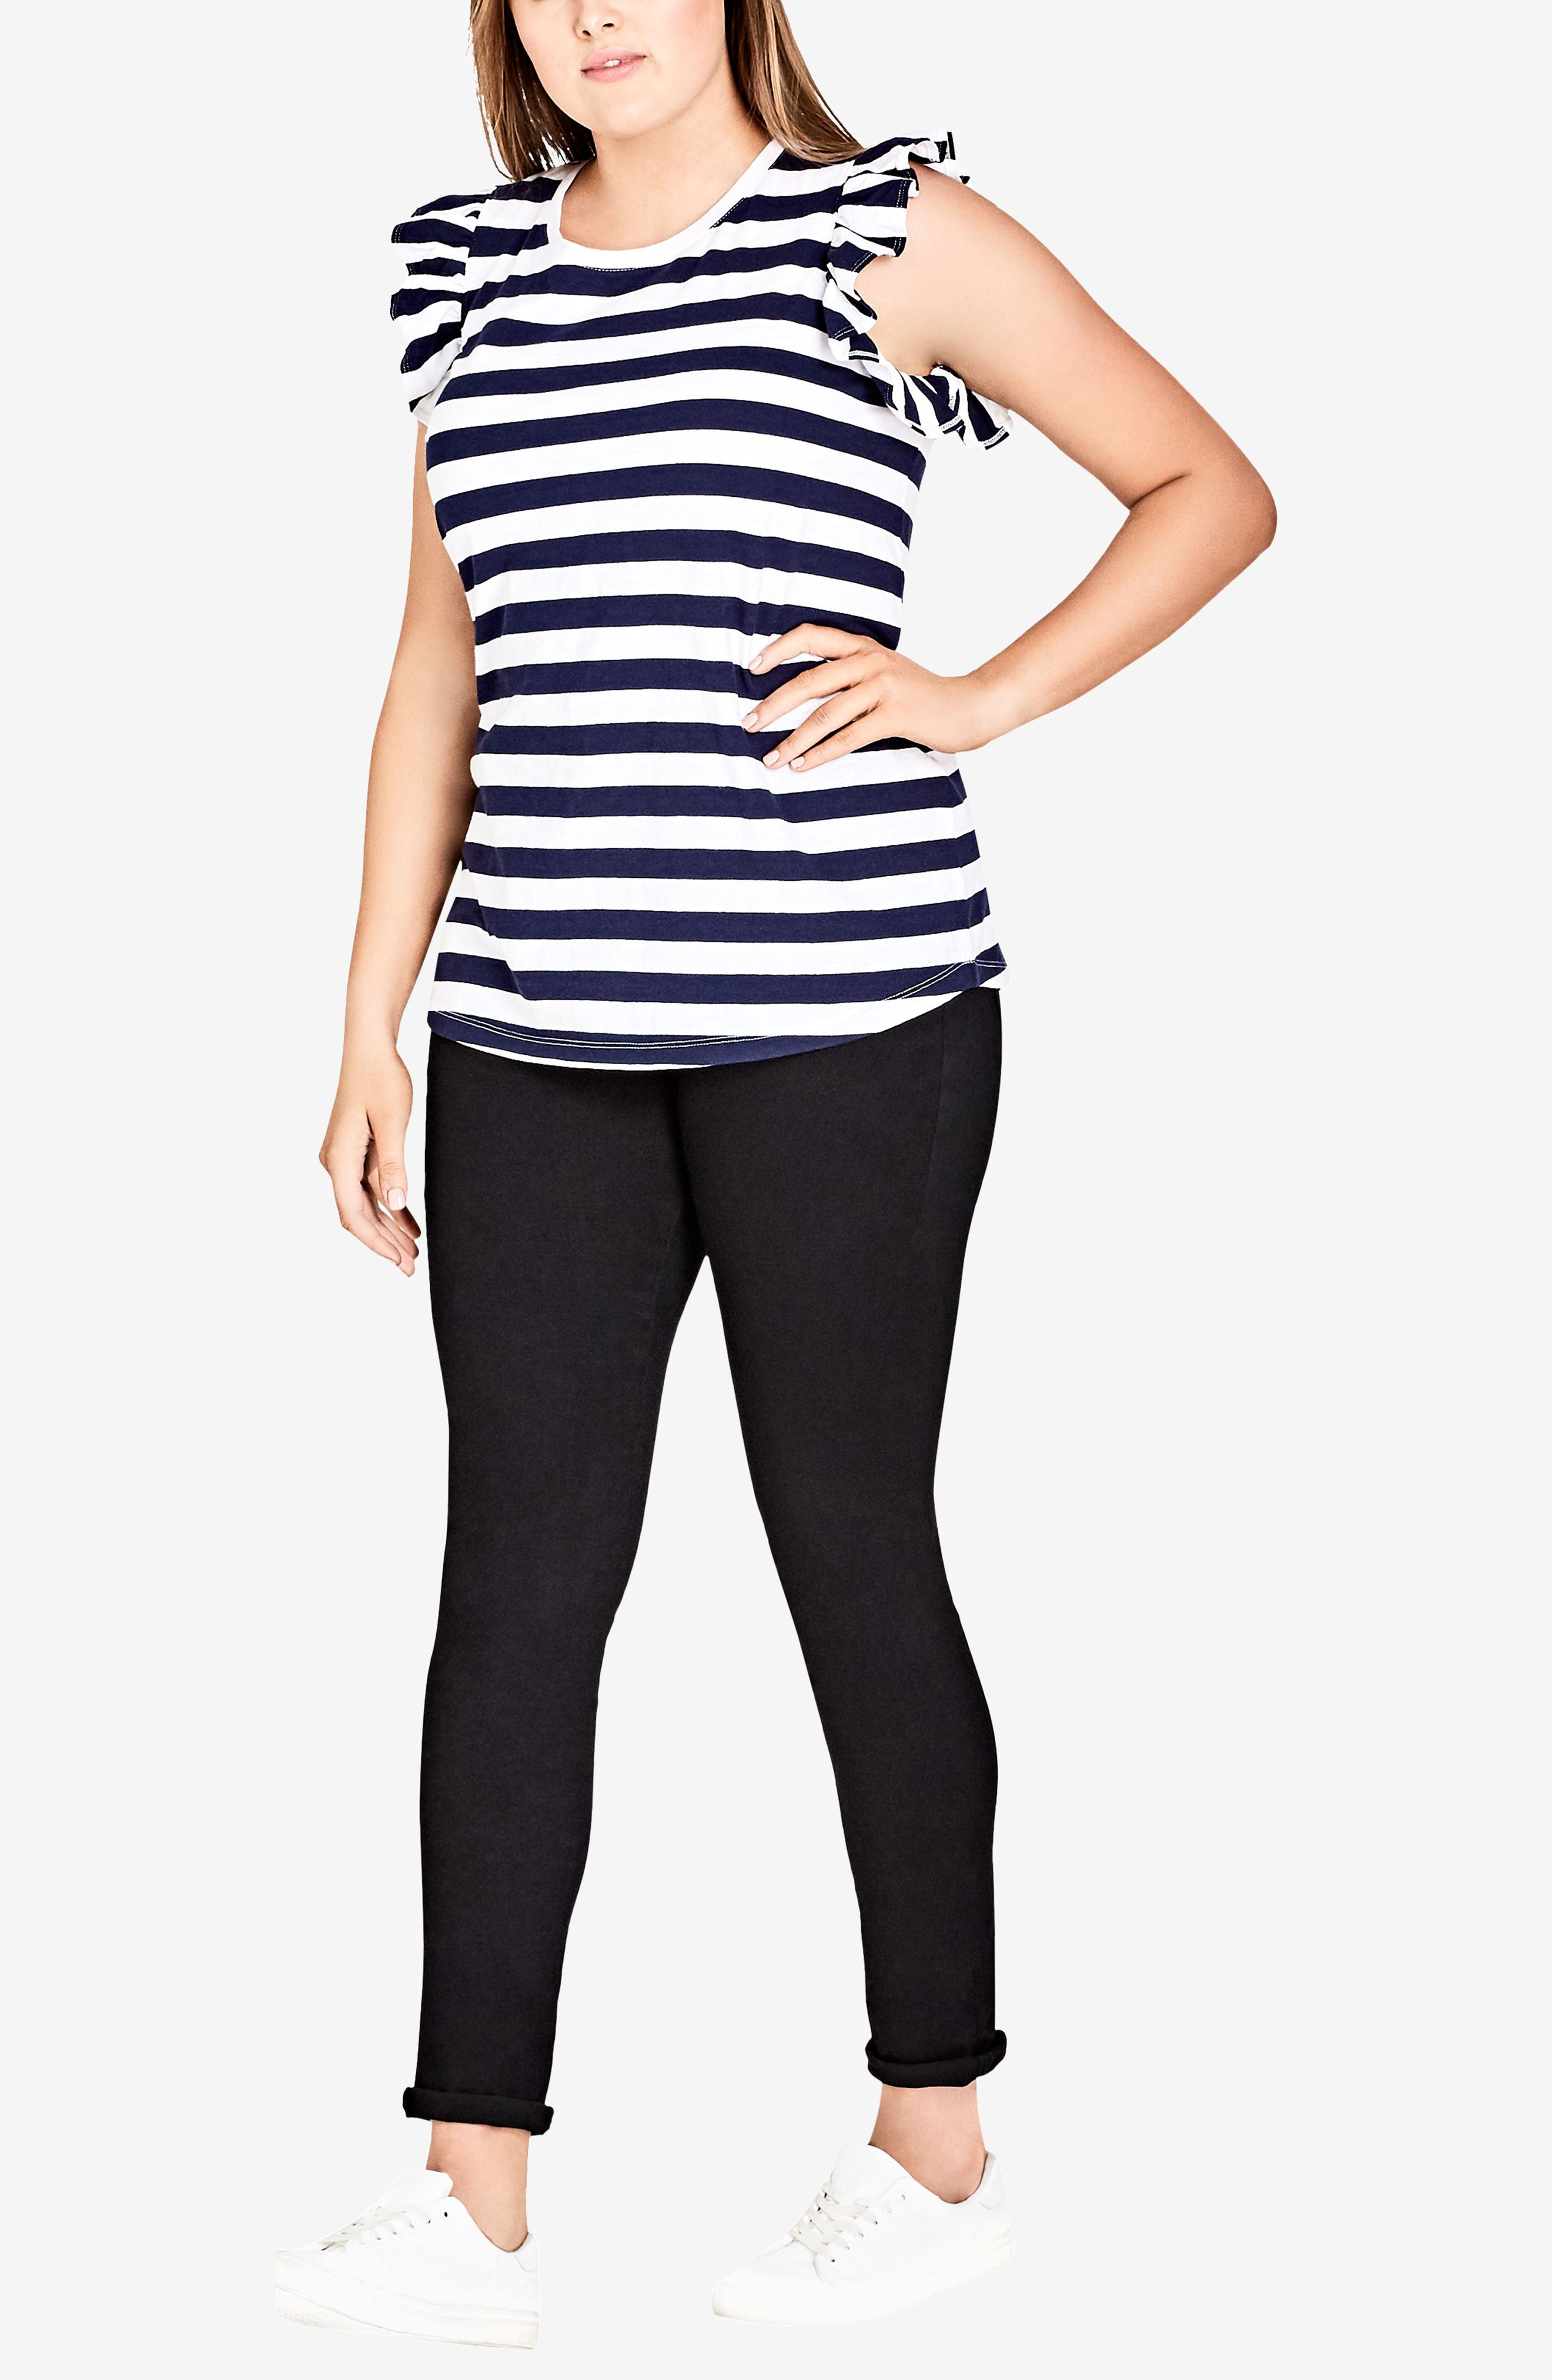 CITY CHIC,                             Stripe Frill Sleeve Knit Top,                             Alternate thumbnail 3, color,                             108